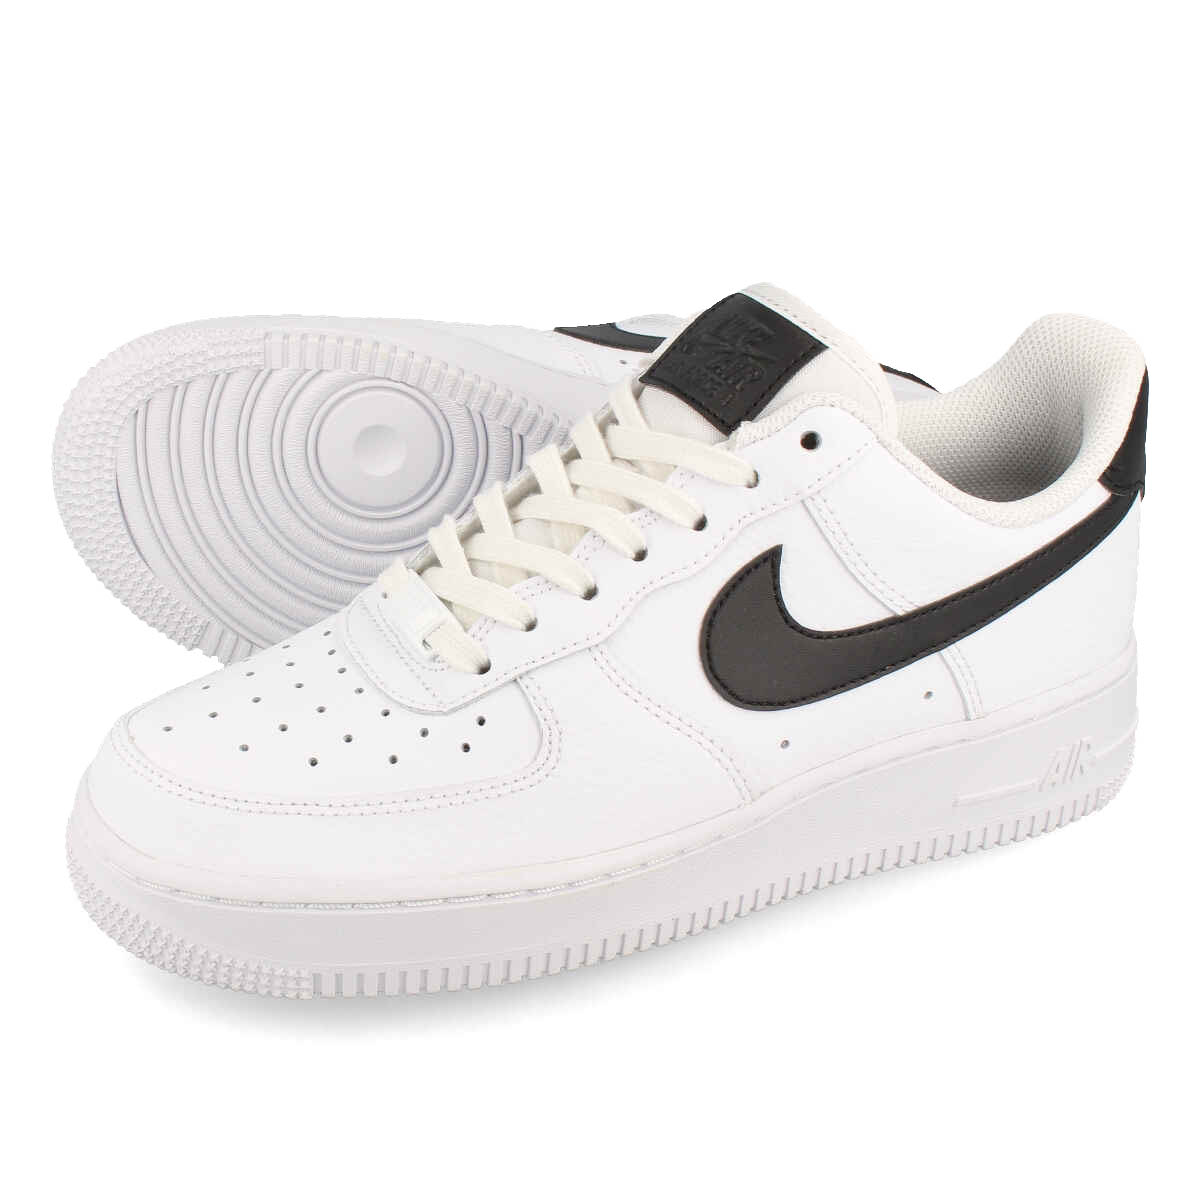 quite nice 95f3f e76b8 NIKE WMNS AIR FORCE 1 07 Nike women air force 1 07 WHITE WHITE BLACK 315,115 -152